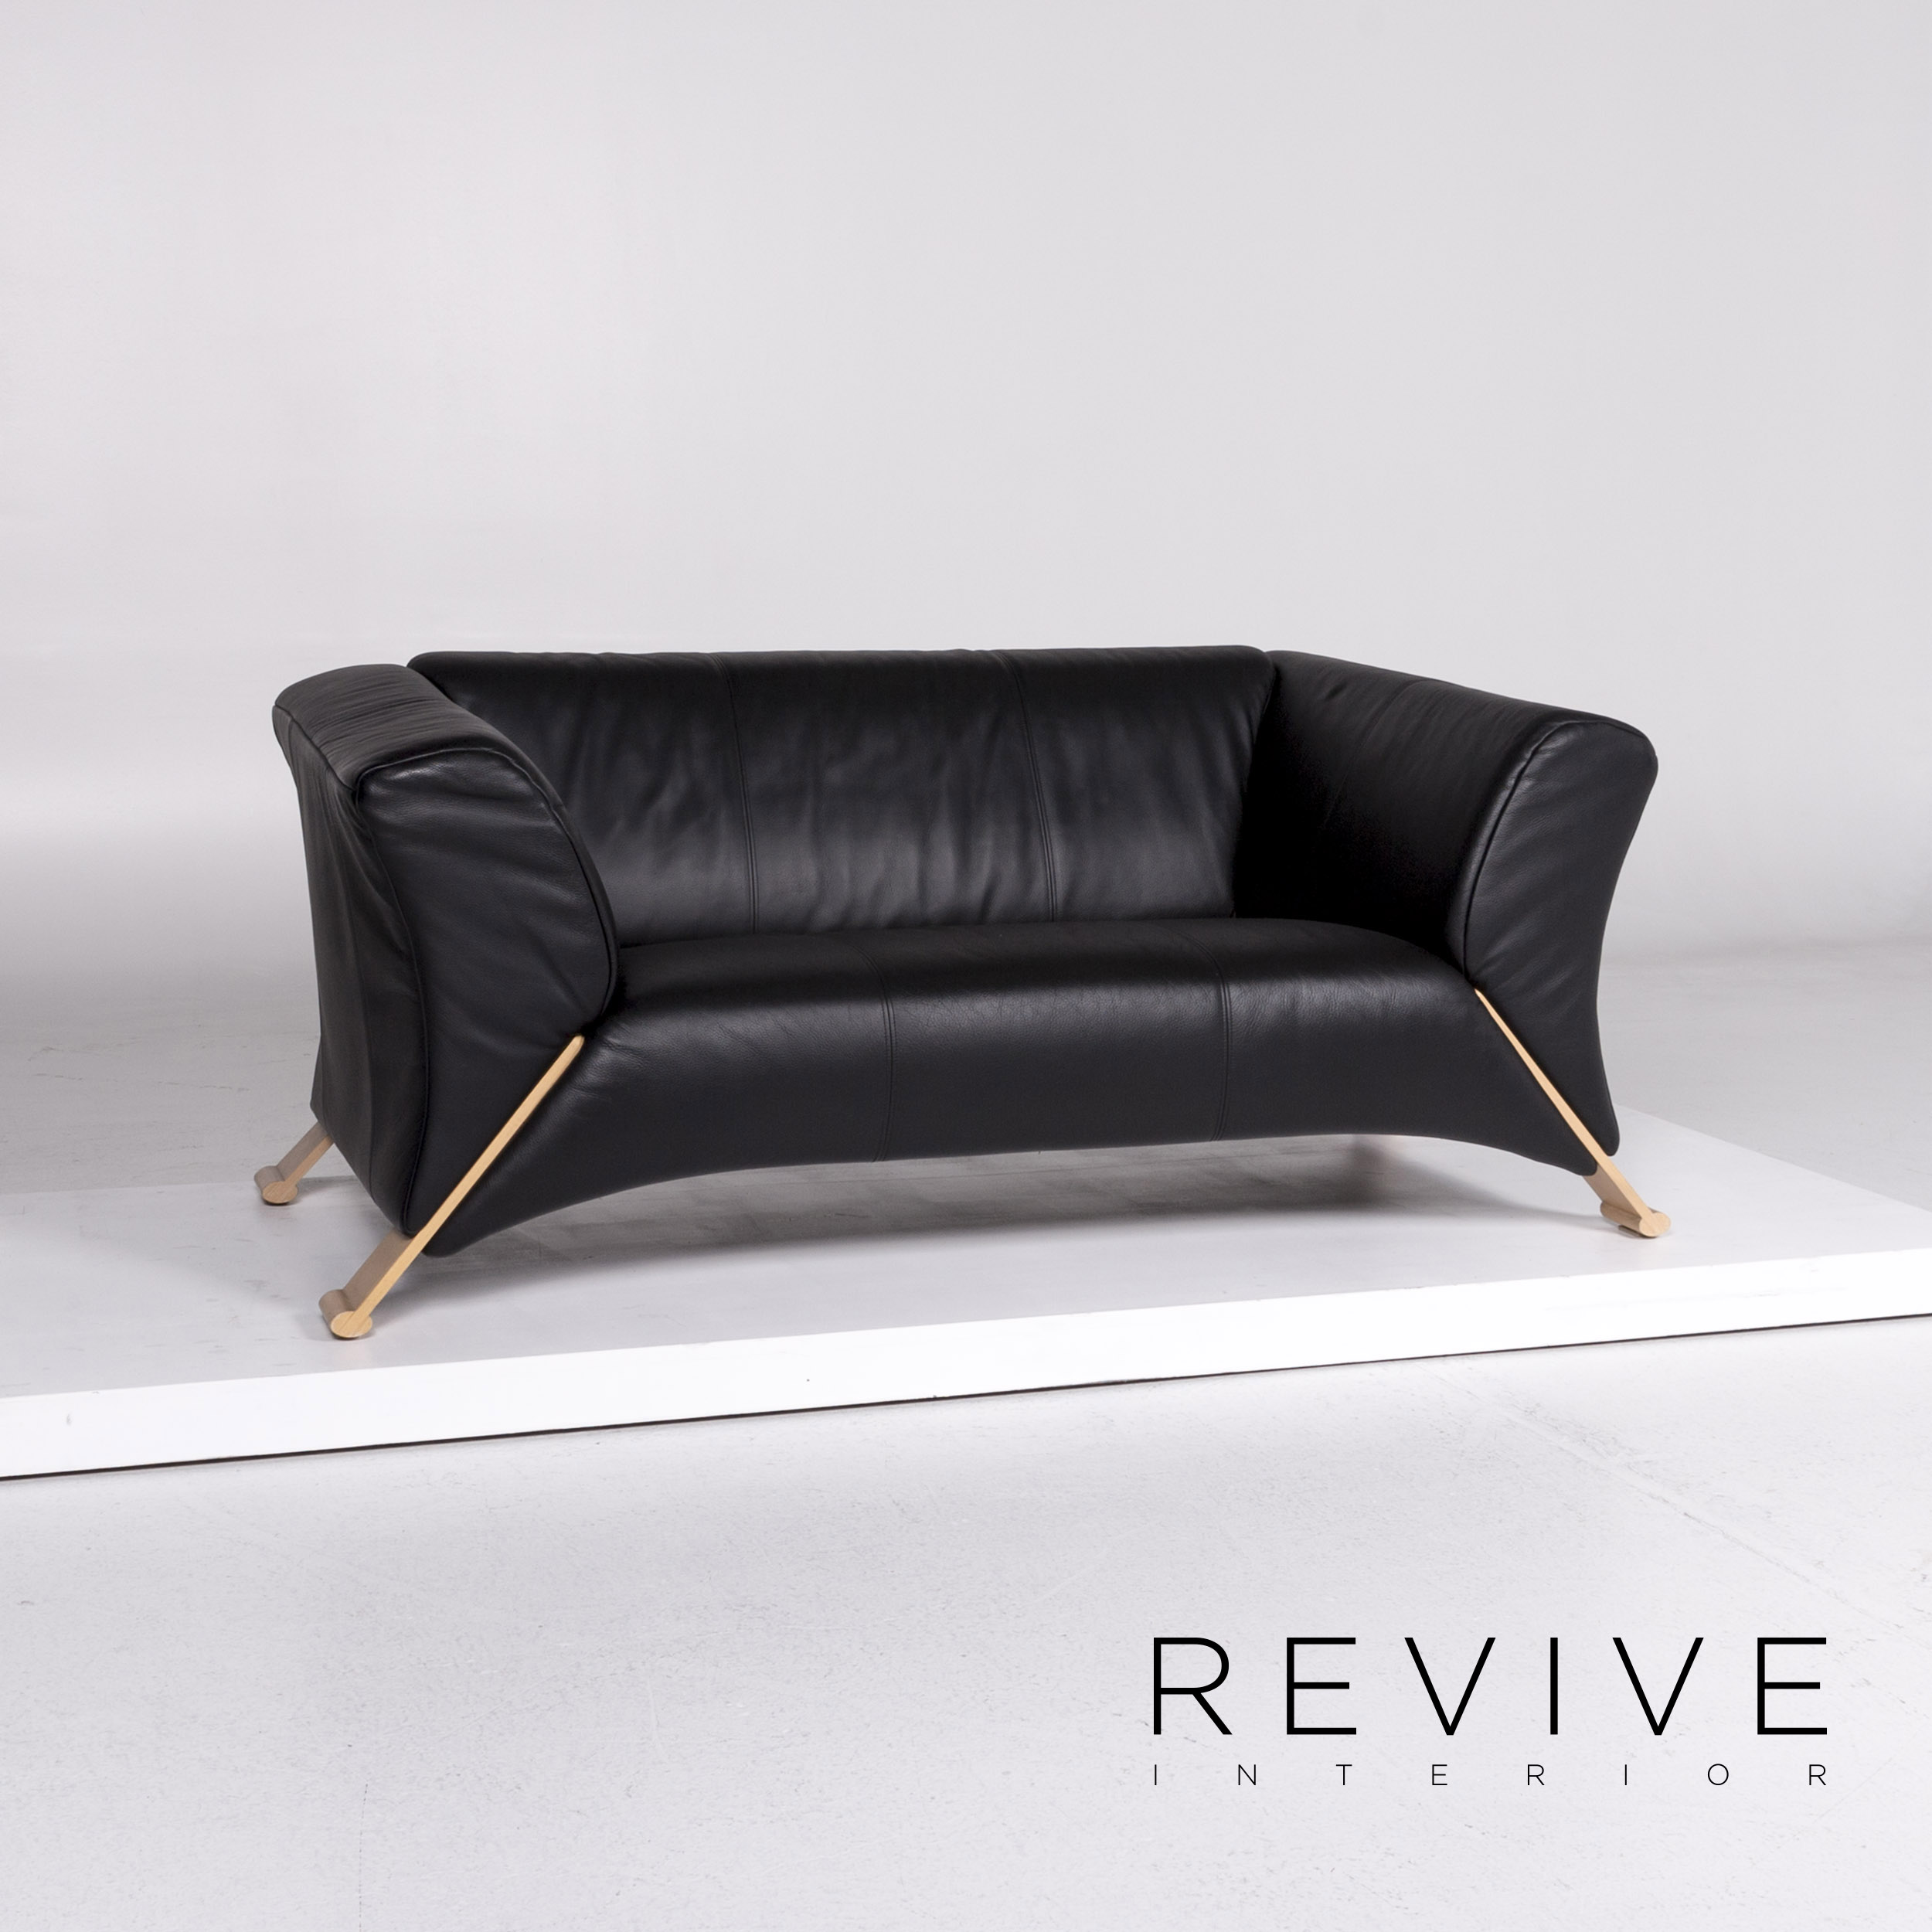 Details about Rolf Benz 322 Leather Sofa Set Black 1x three-seater 1x Two  Seater #10997- show original title